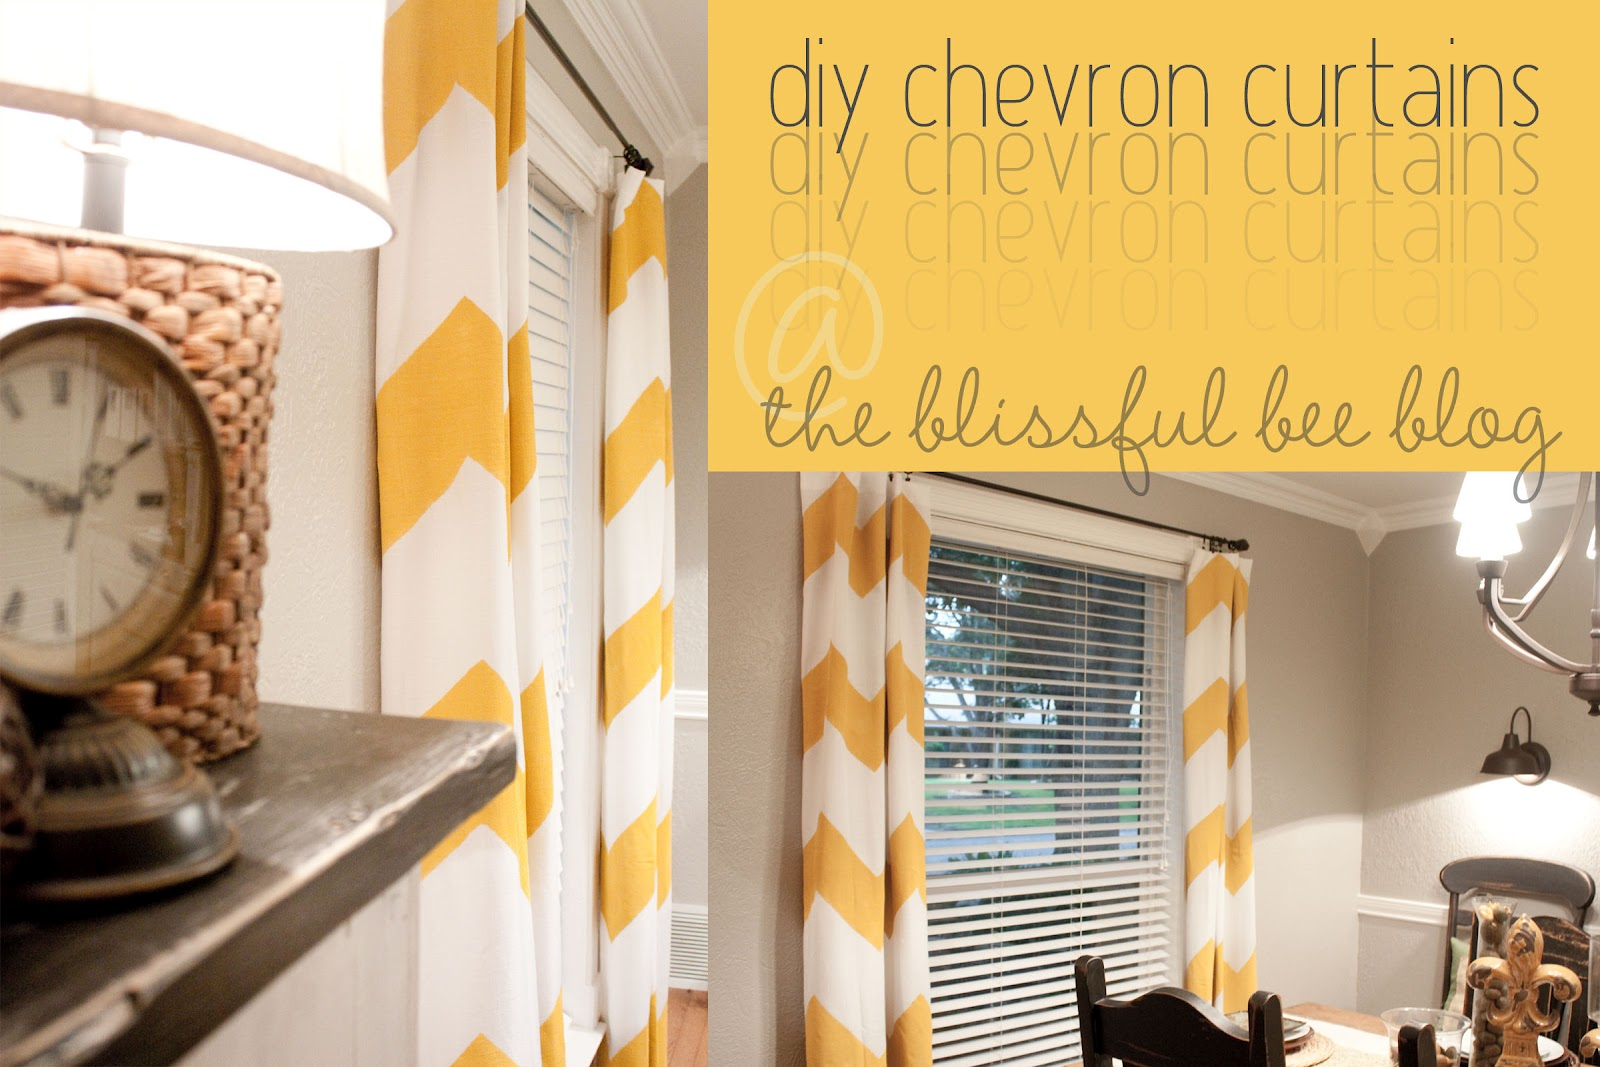 DIY Painted Chevron Curtains - THE BLISSFUL BEE